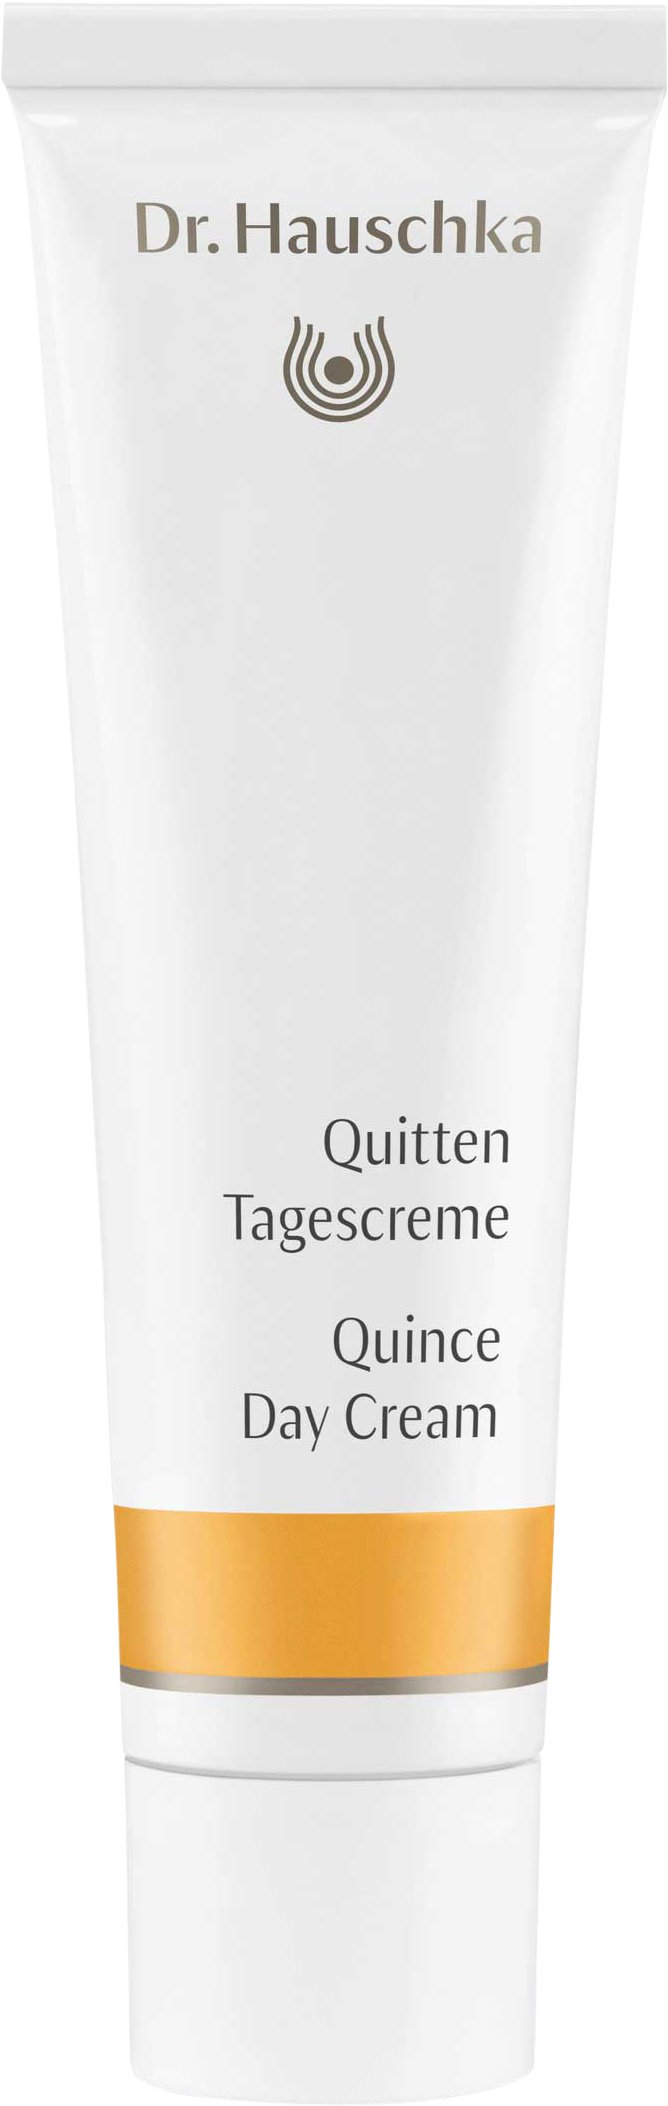 Dr. Hauschka - Quince Day Cream 30 ml